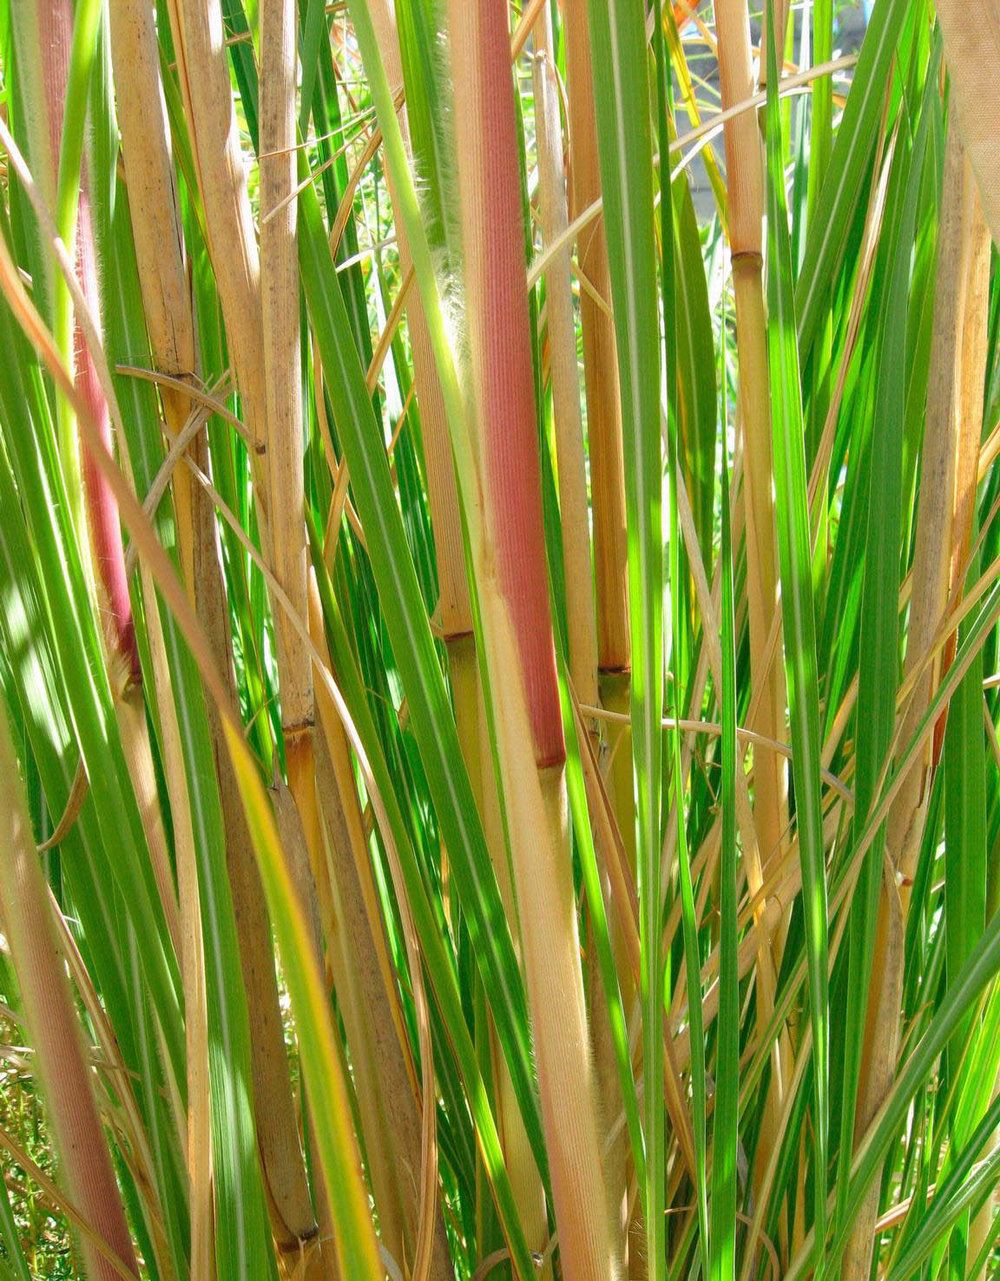 Ravenna grass stems